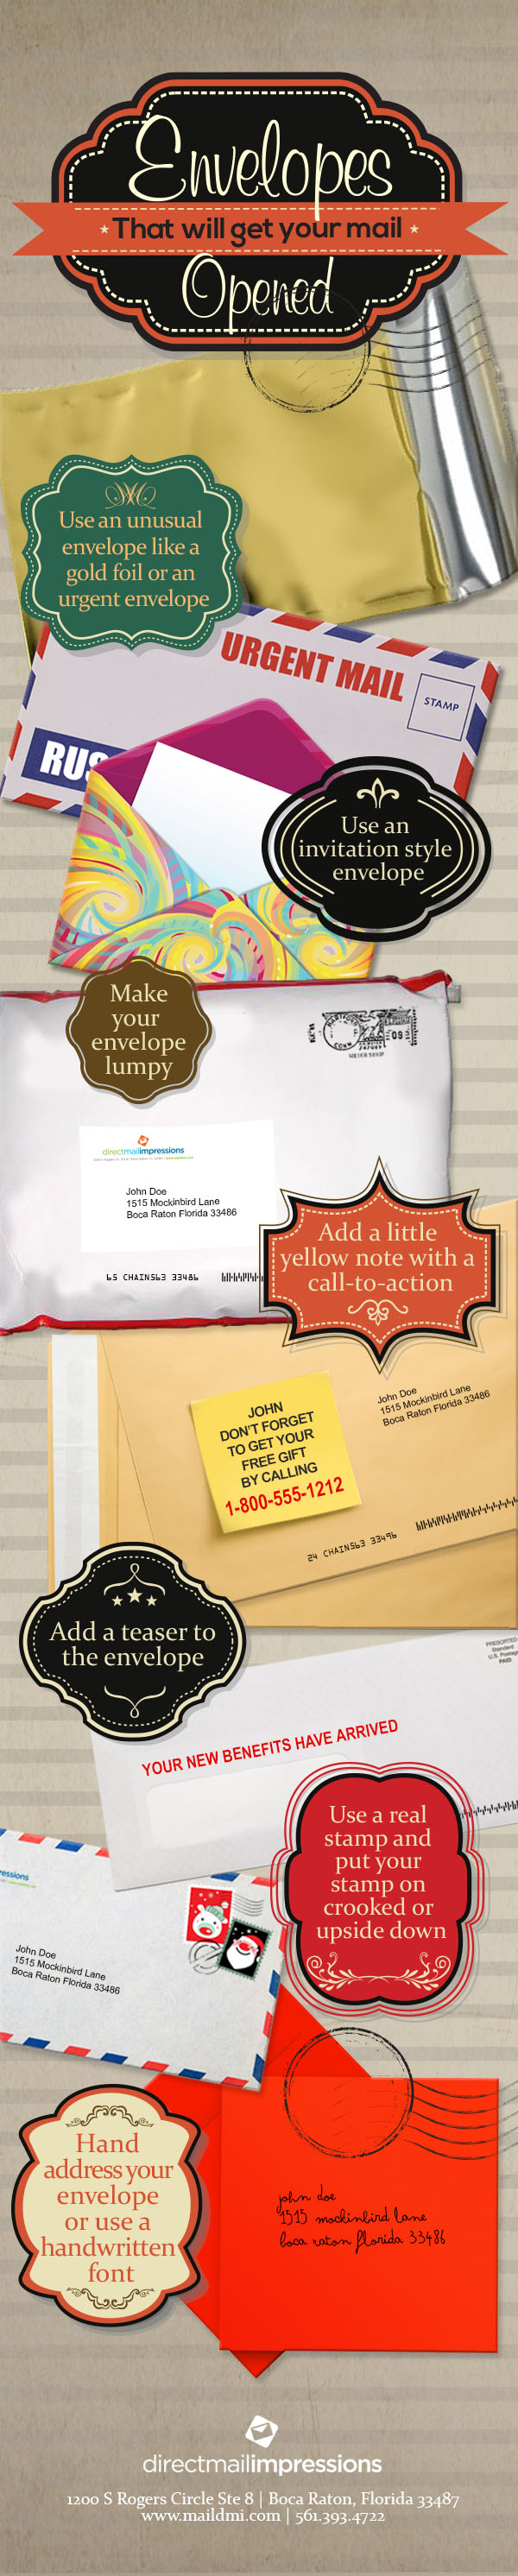 Envelopes that will get your mail opened